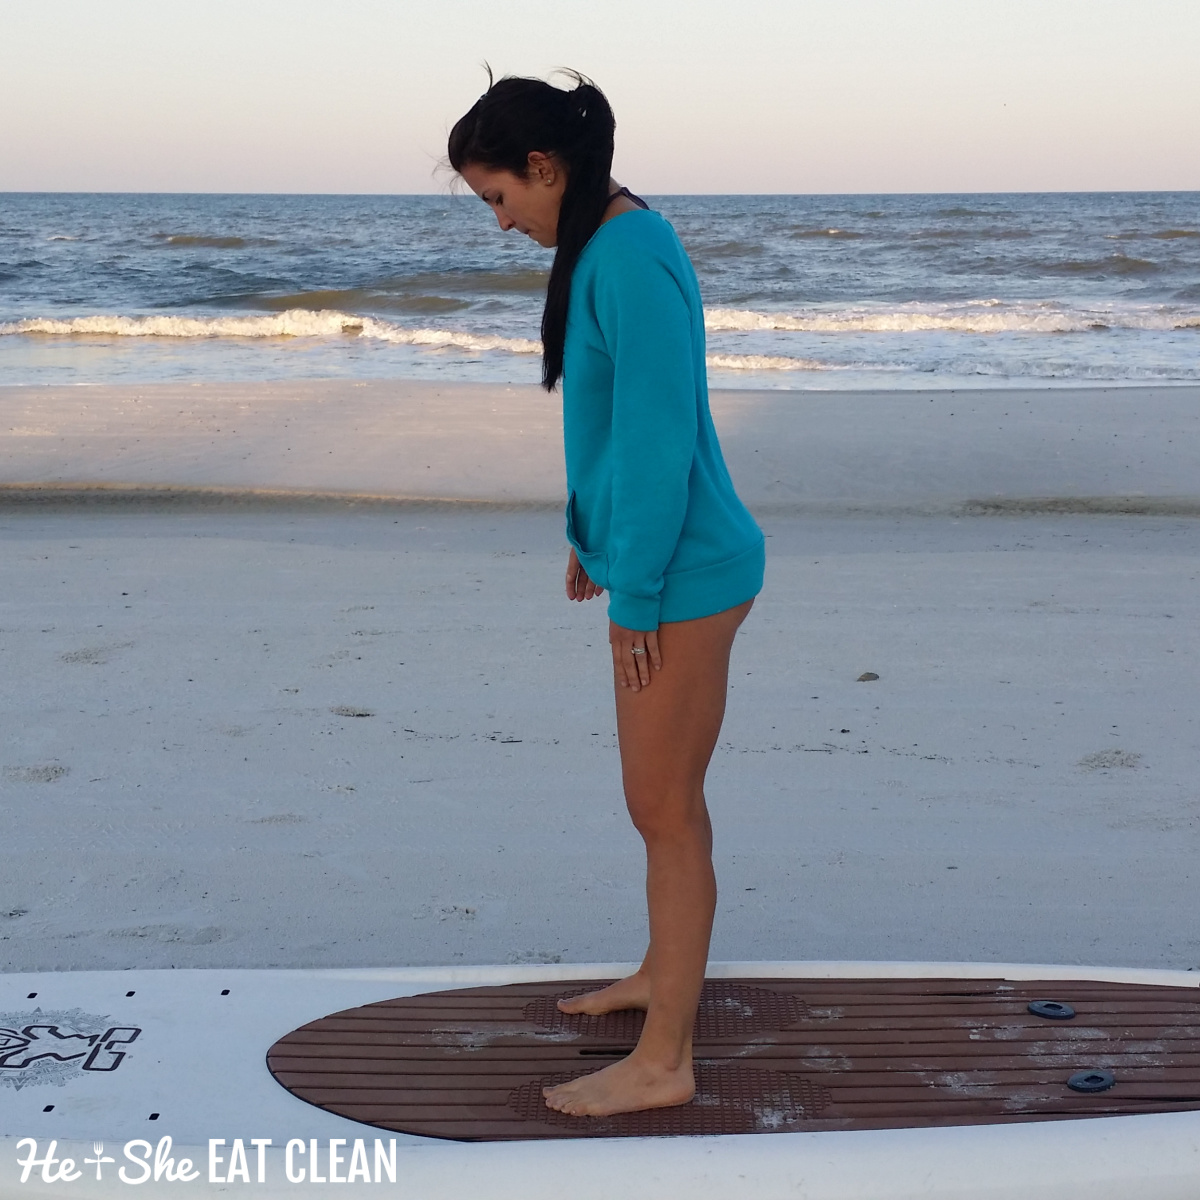 female on the beach standing on a paddleboard wearing a blue sweatshirt